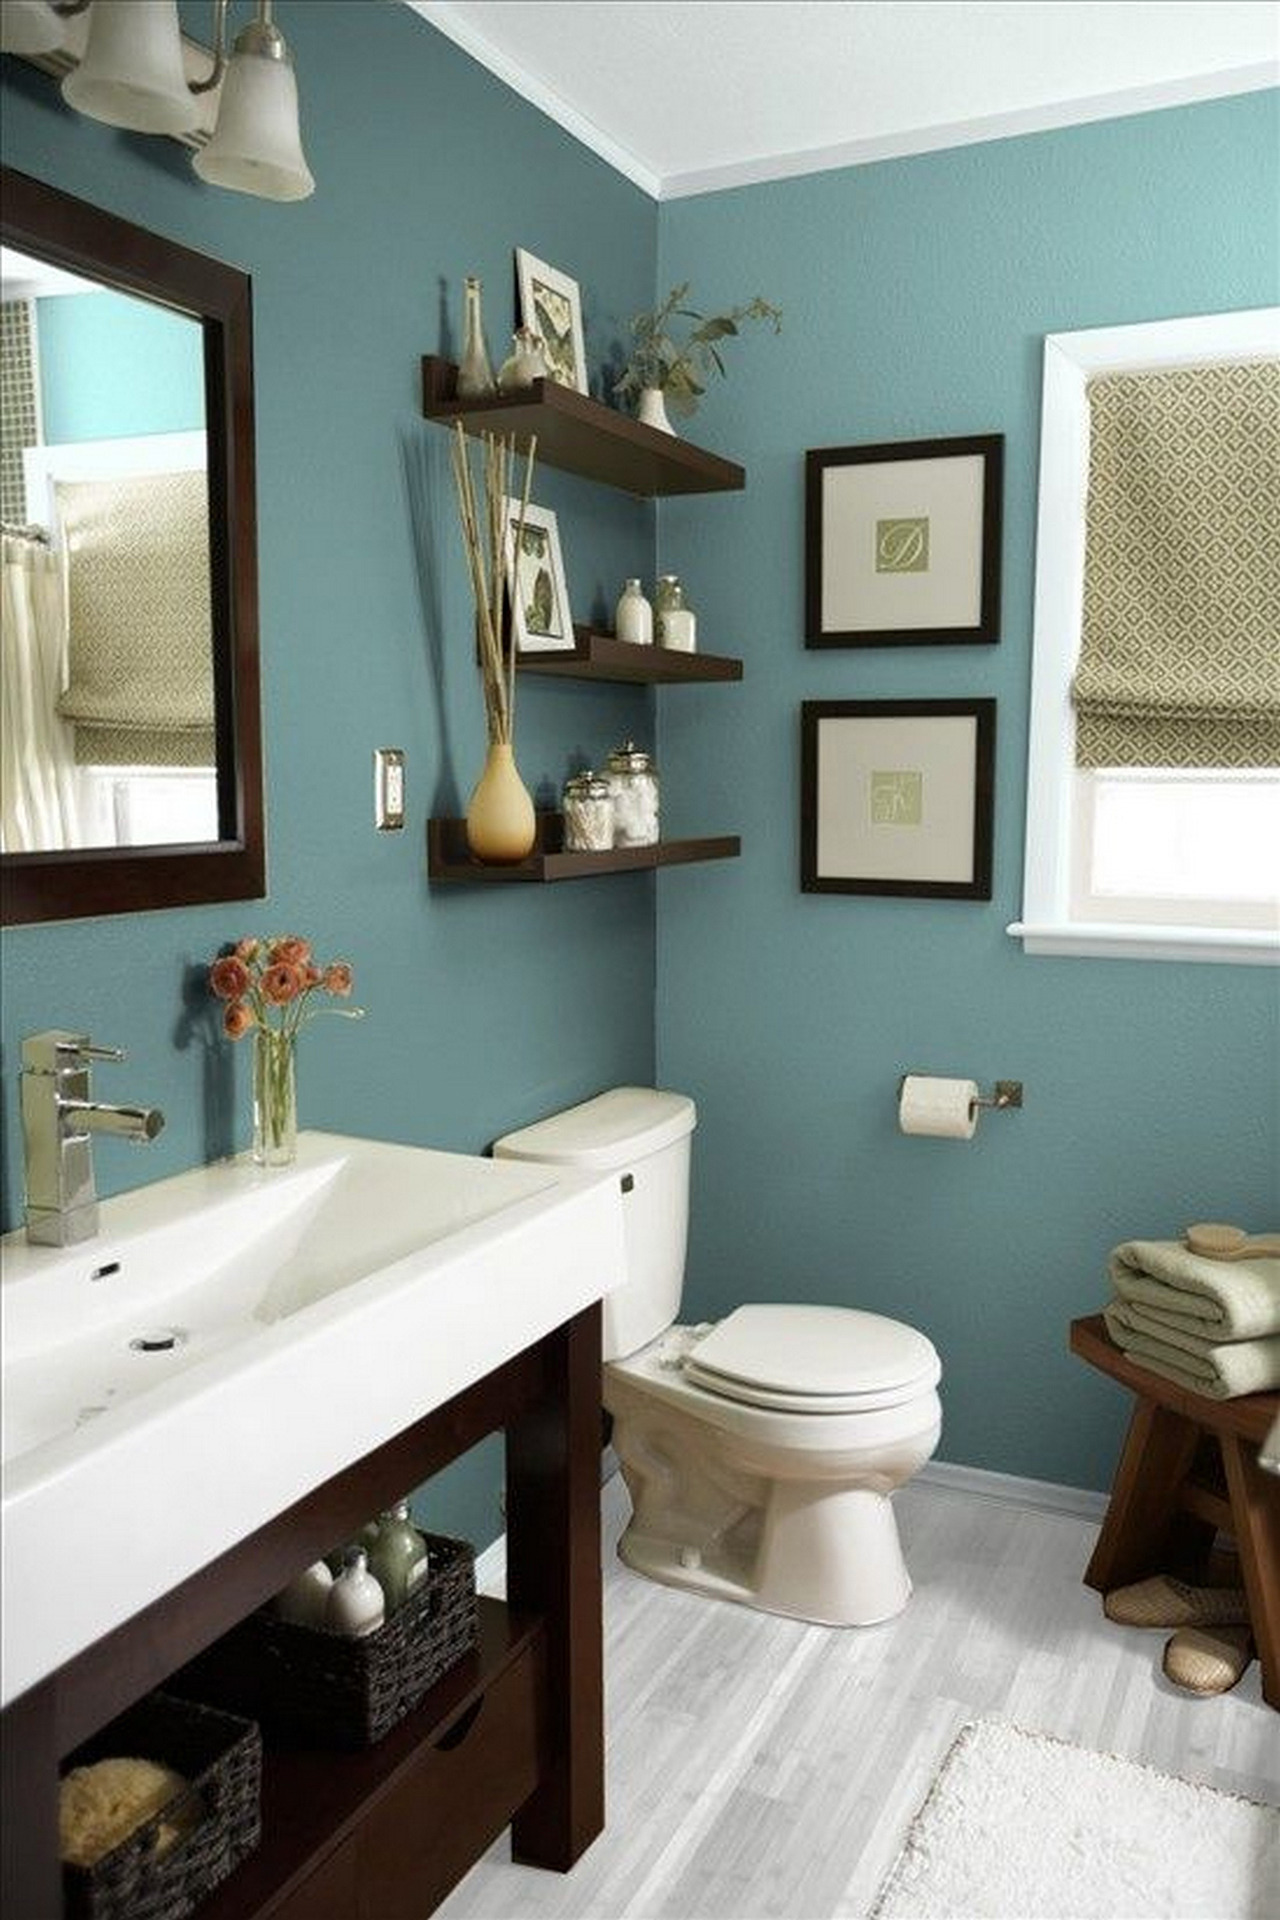 Ideas to Decorate A Bathroom Inspirational 25 Best Bathroom Decor Ideas and Designs that are Trendy In 2020